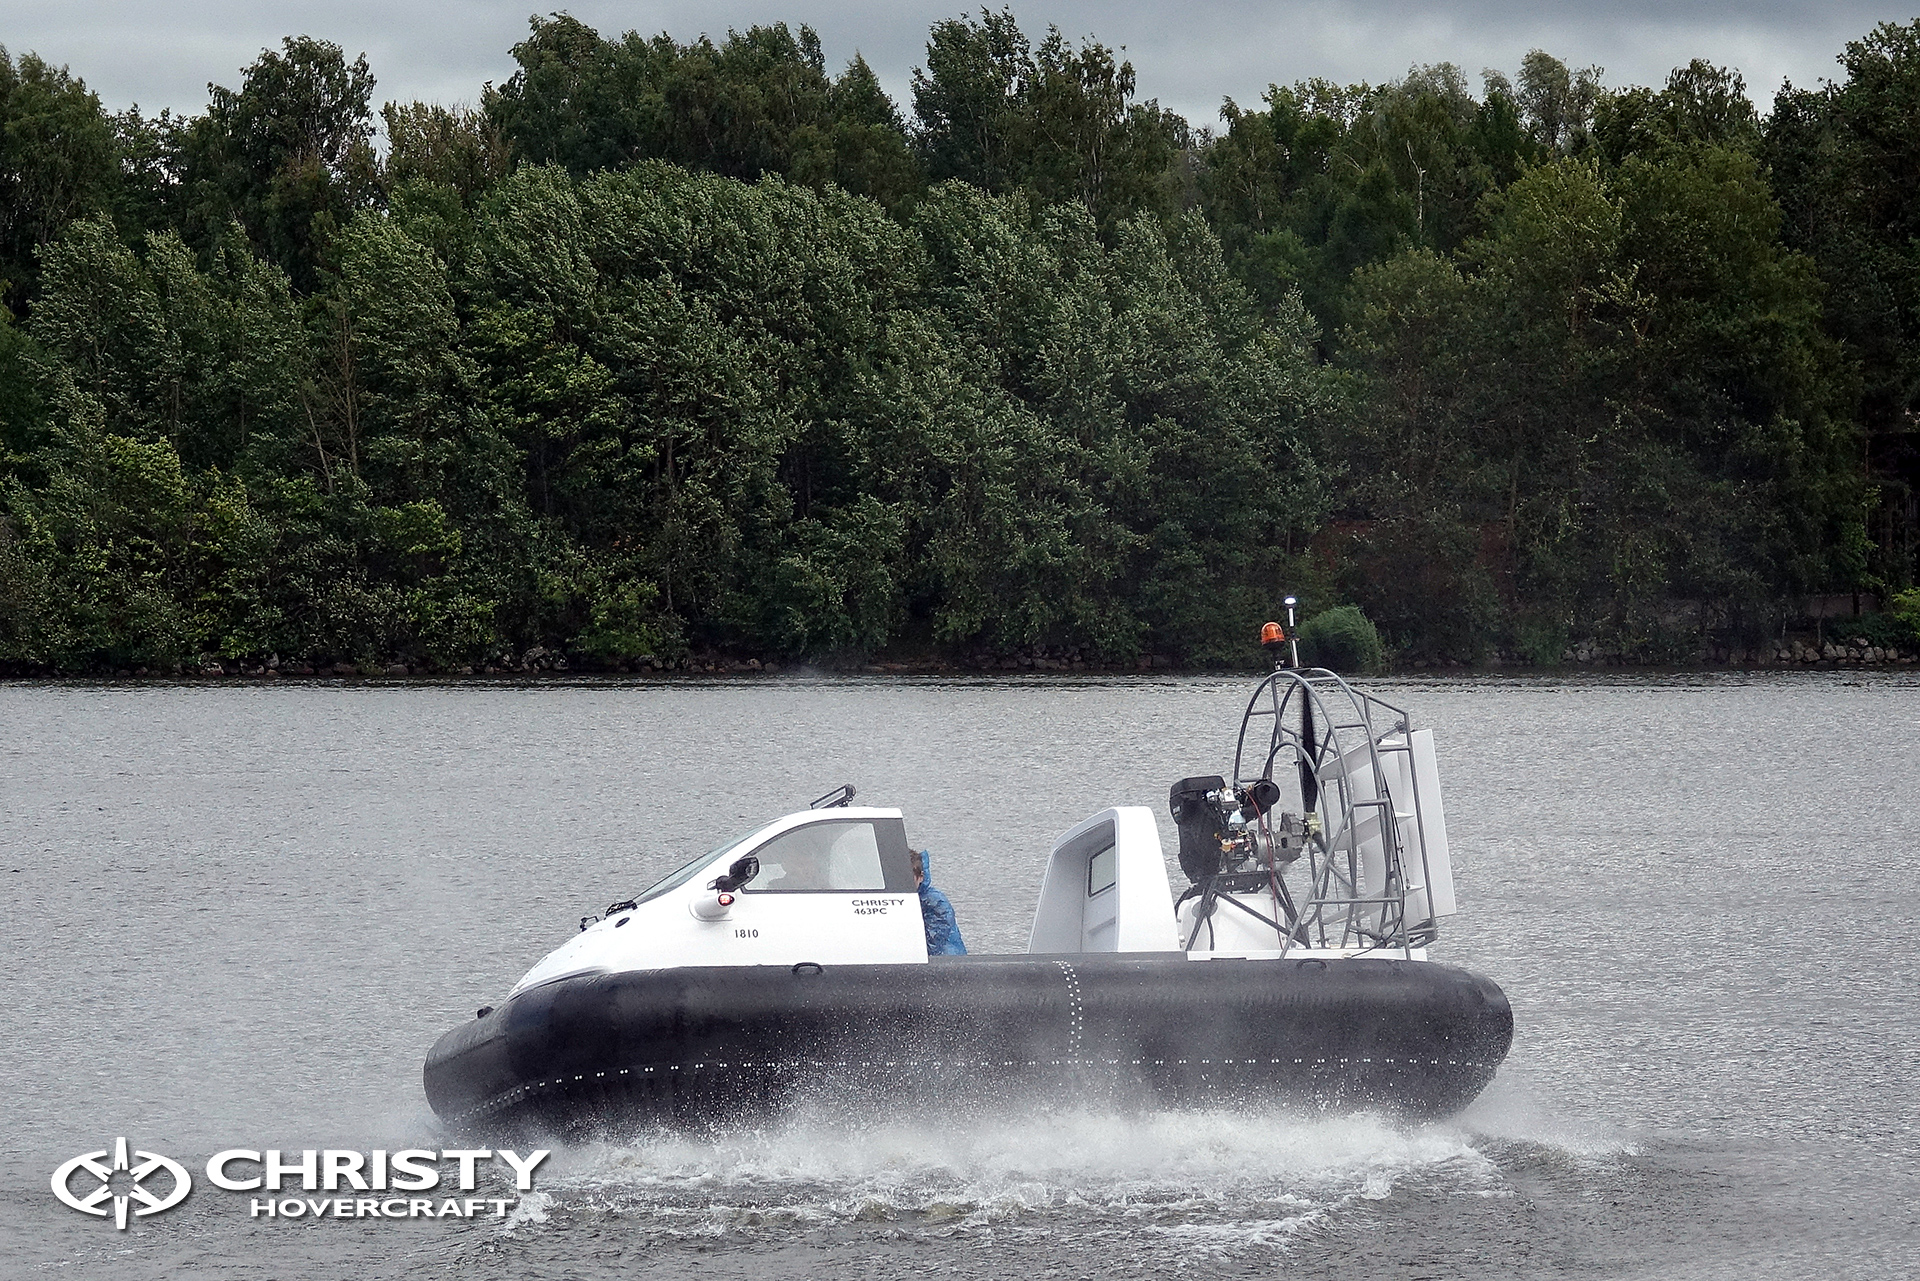 Hovercraft Christy 463 PC in Storm 290618 20.jpg | фото №16